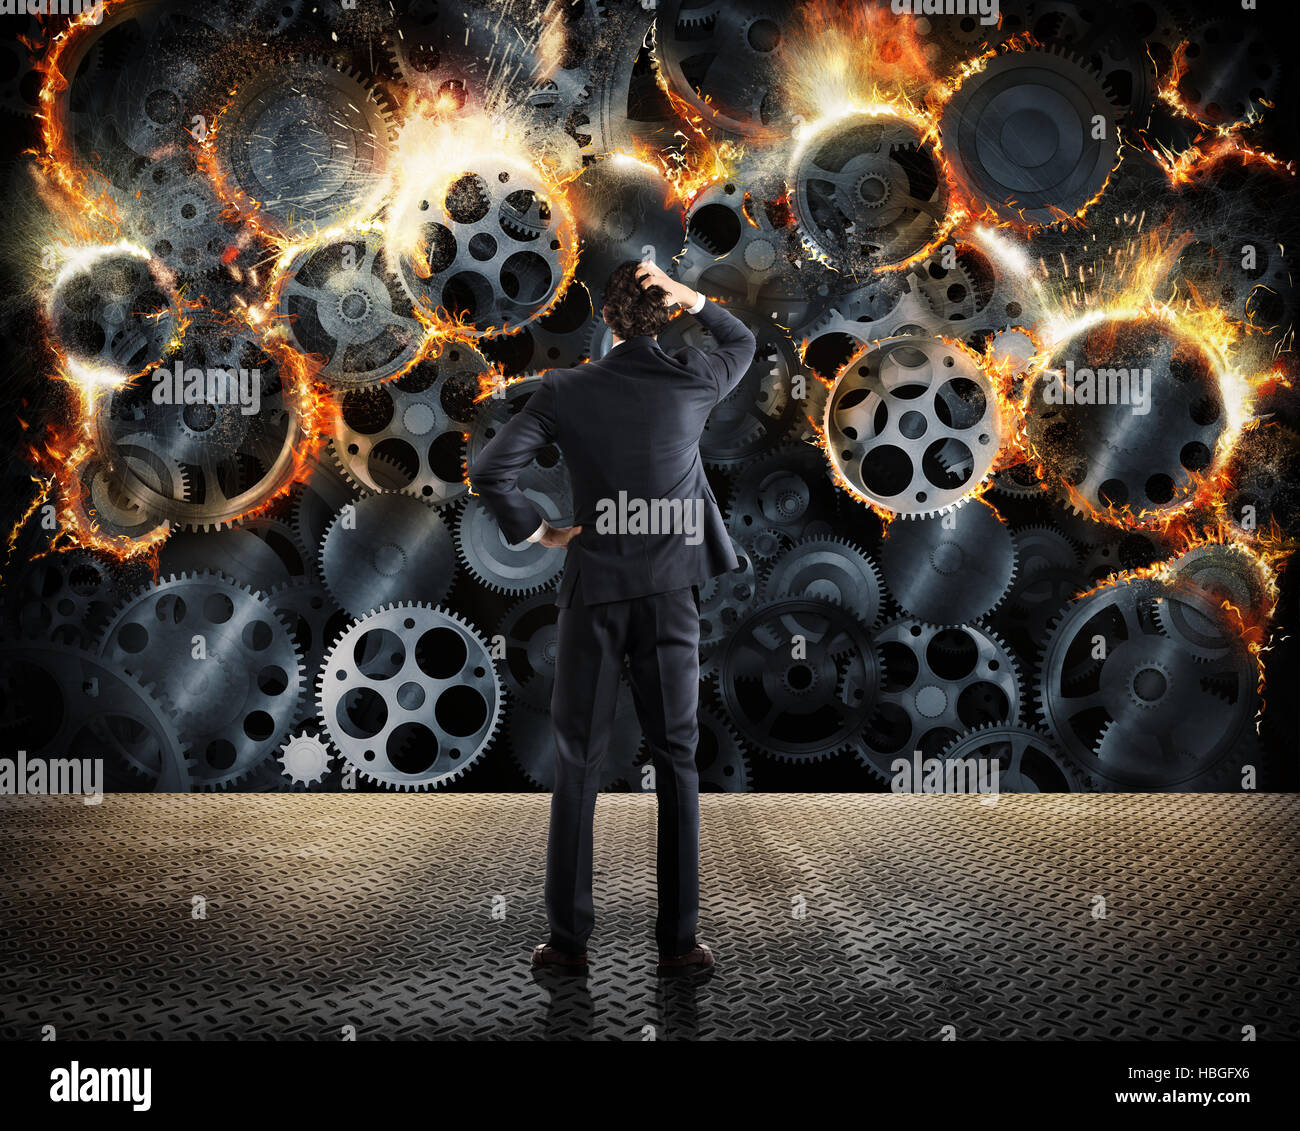 Worn system business problems - Stock Image